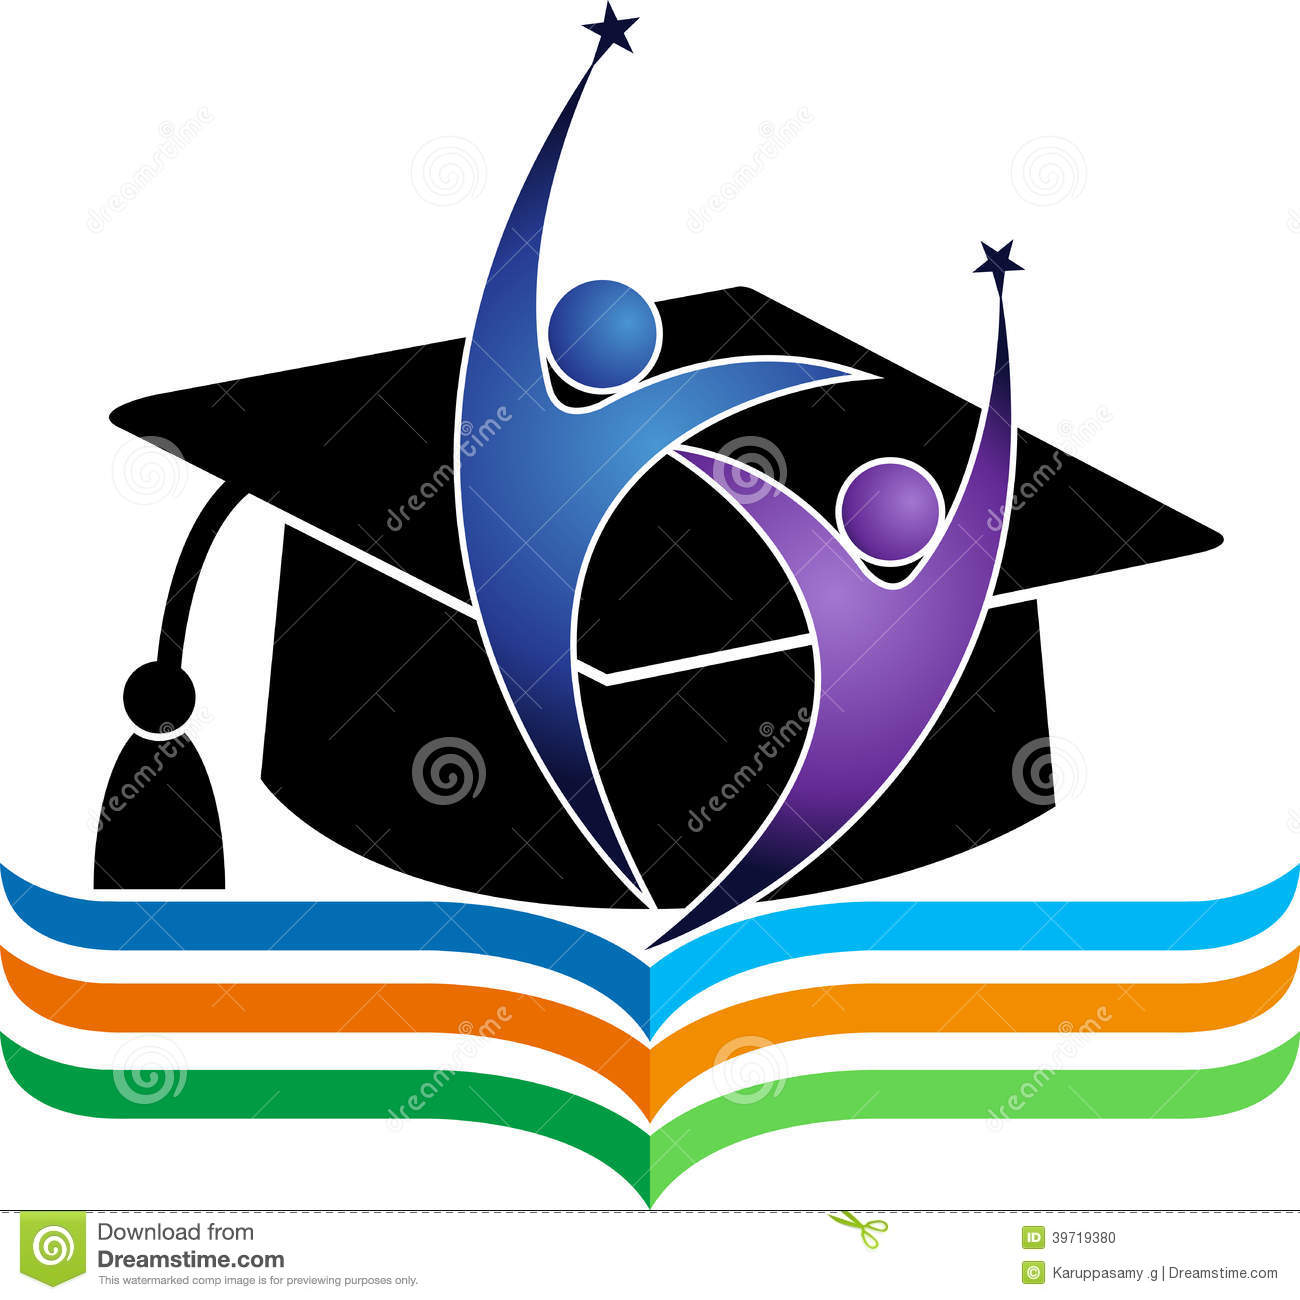 Illustration art of a graduation logo with isolated background.